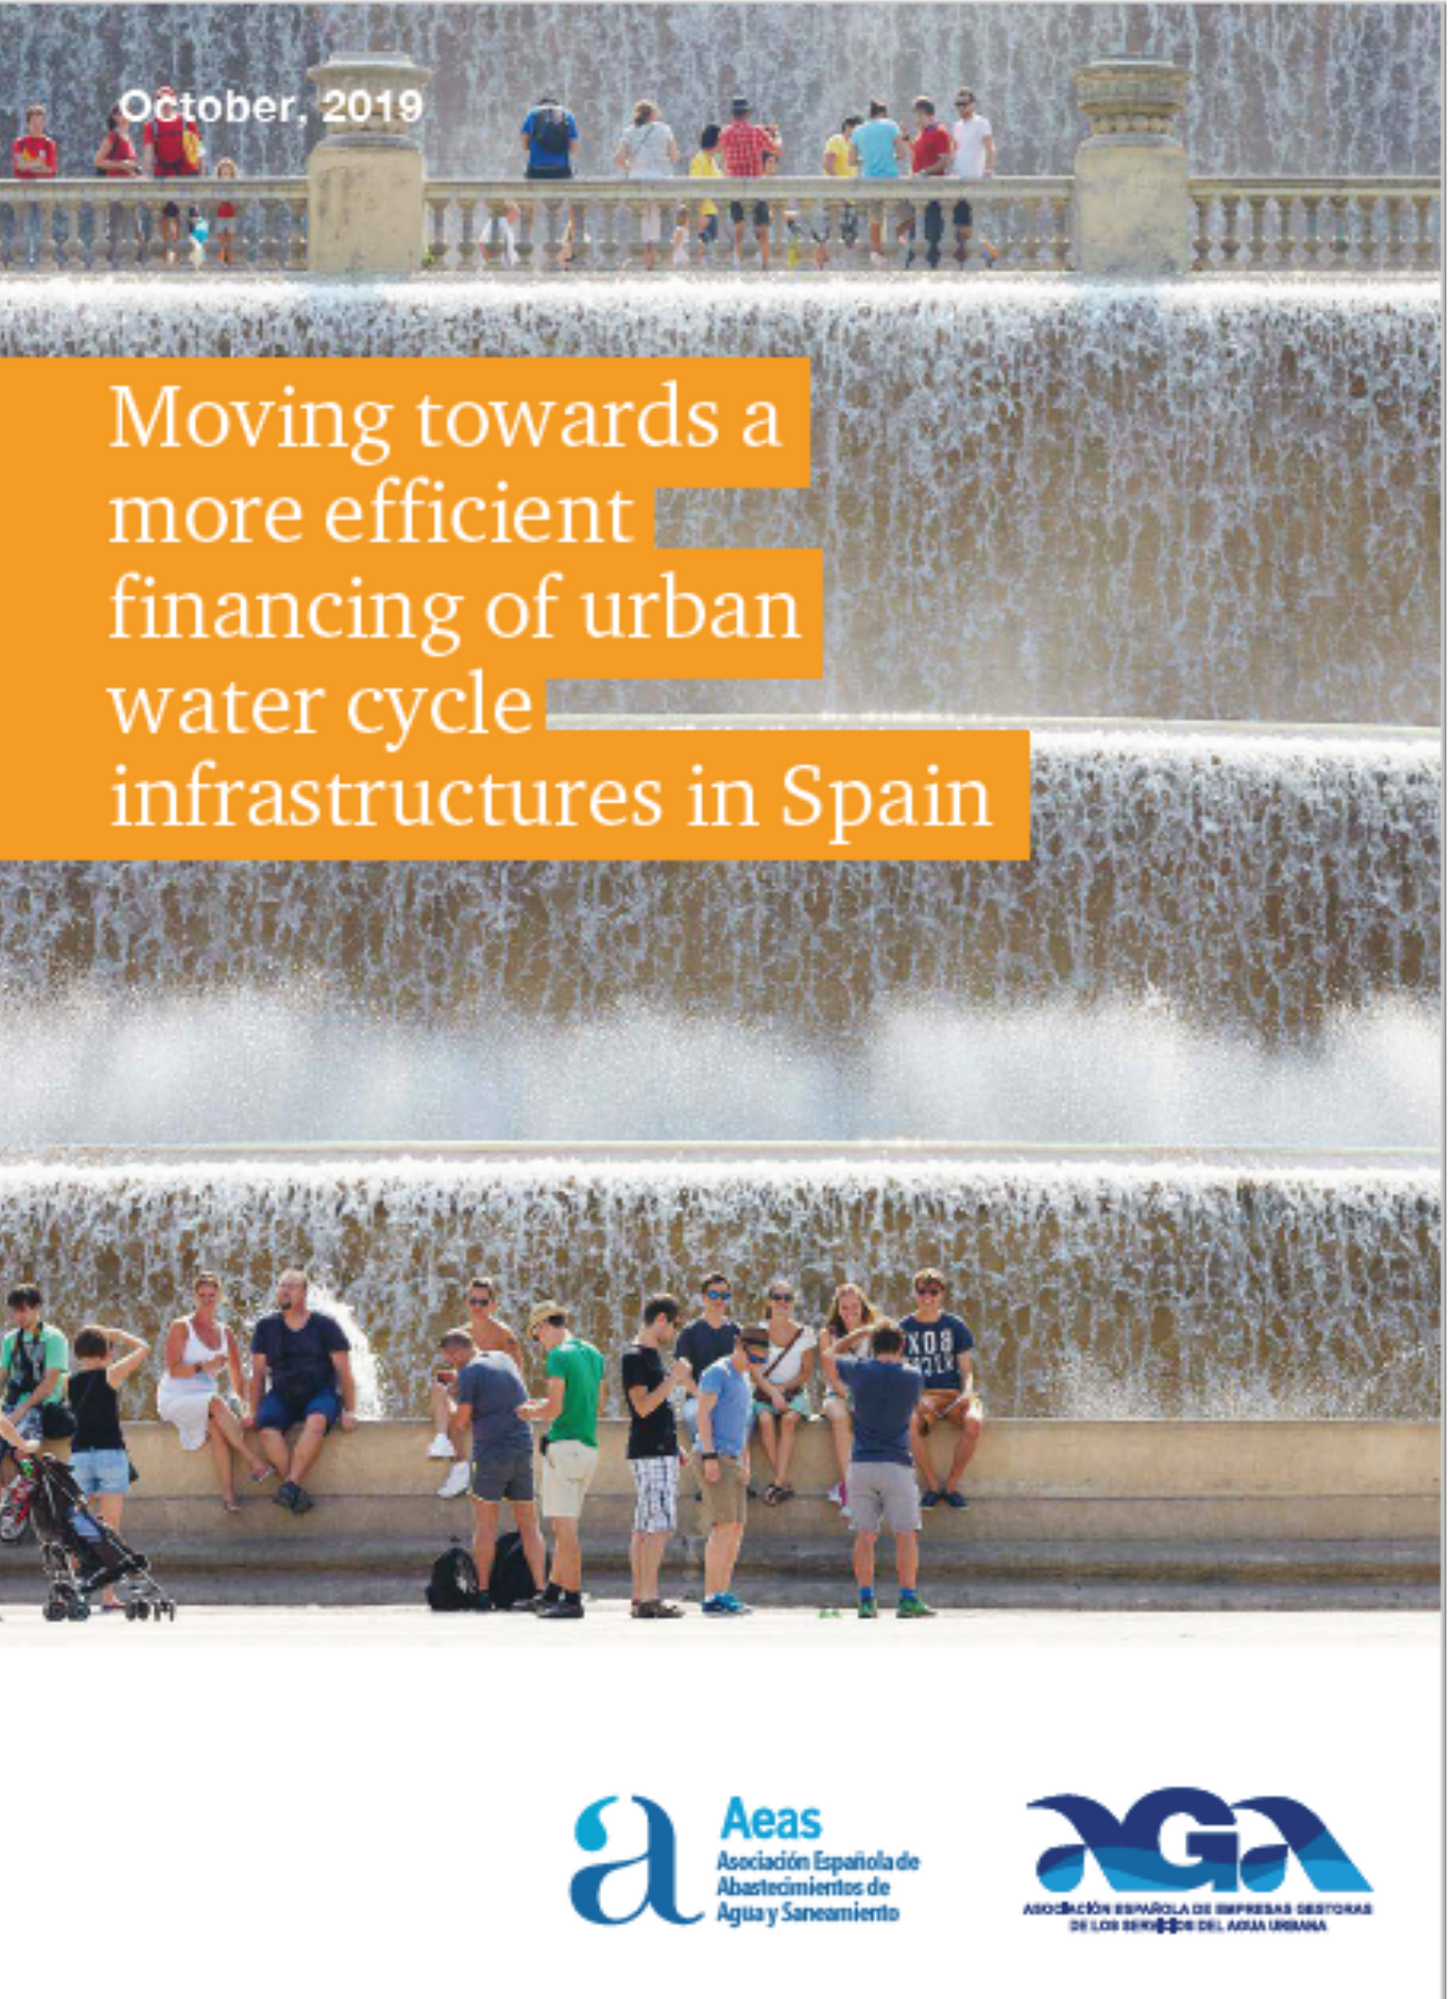 Moving towards a more efficient financing of urban water cycle infrastructures in Spain